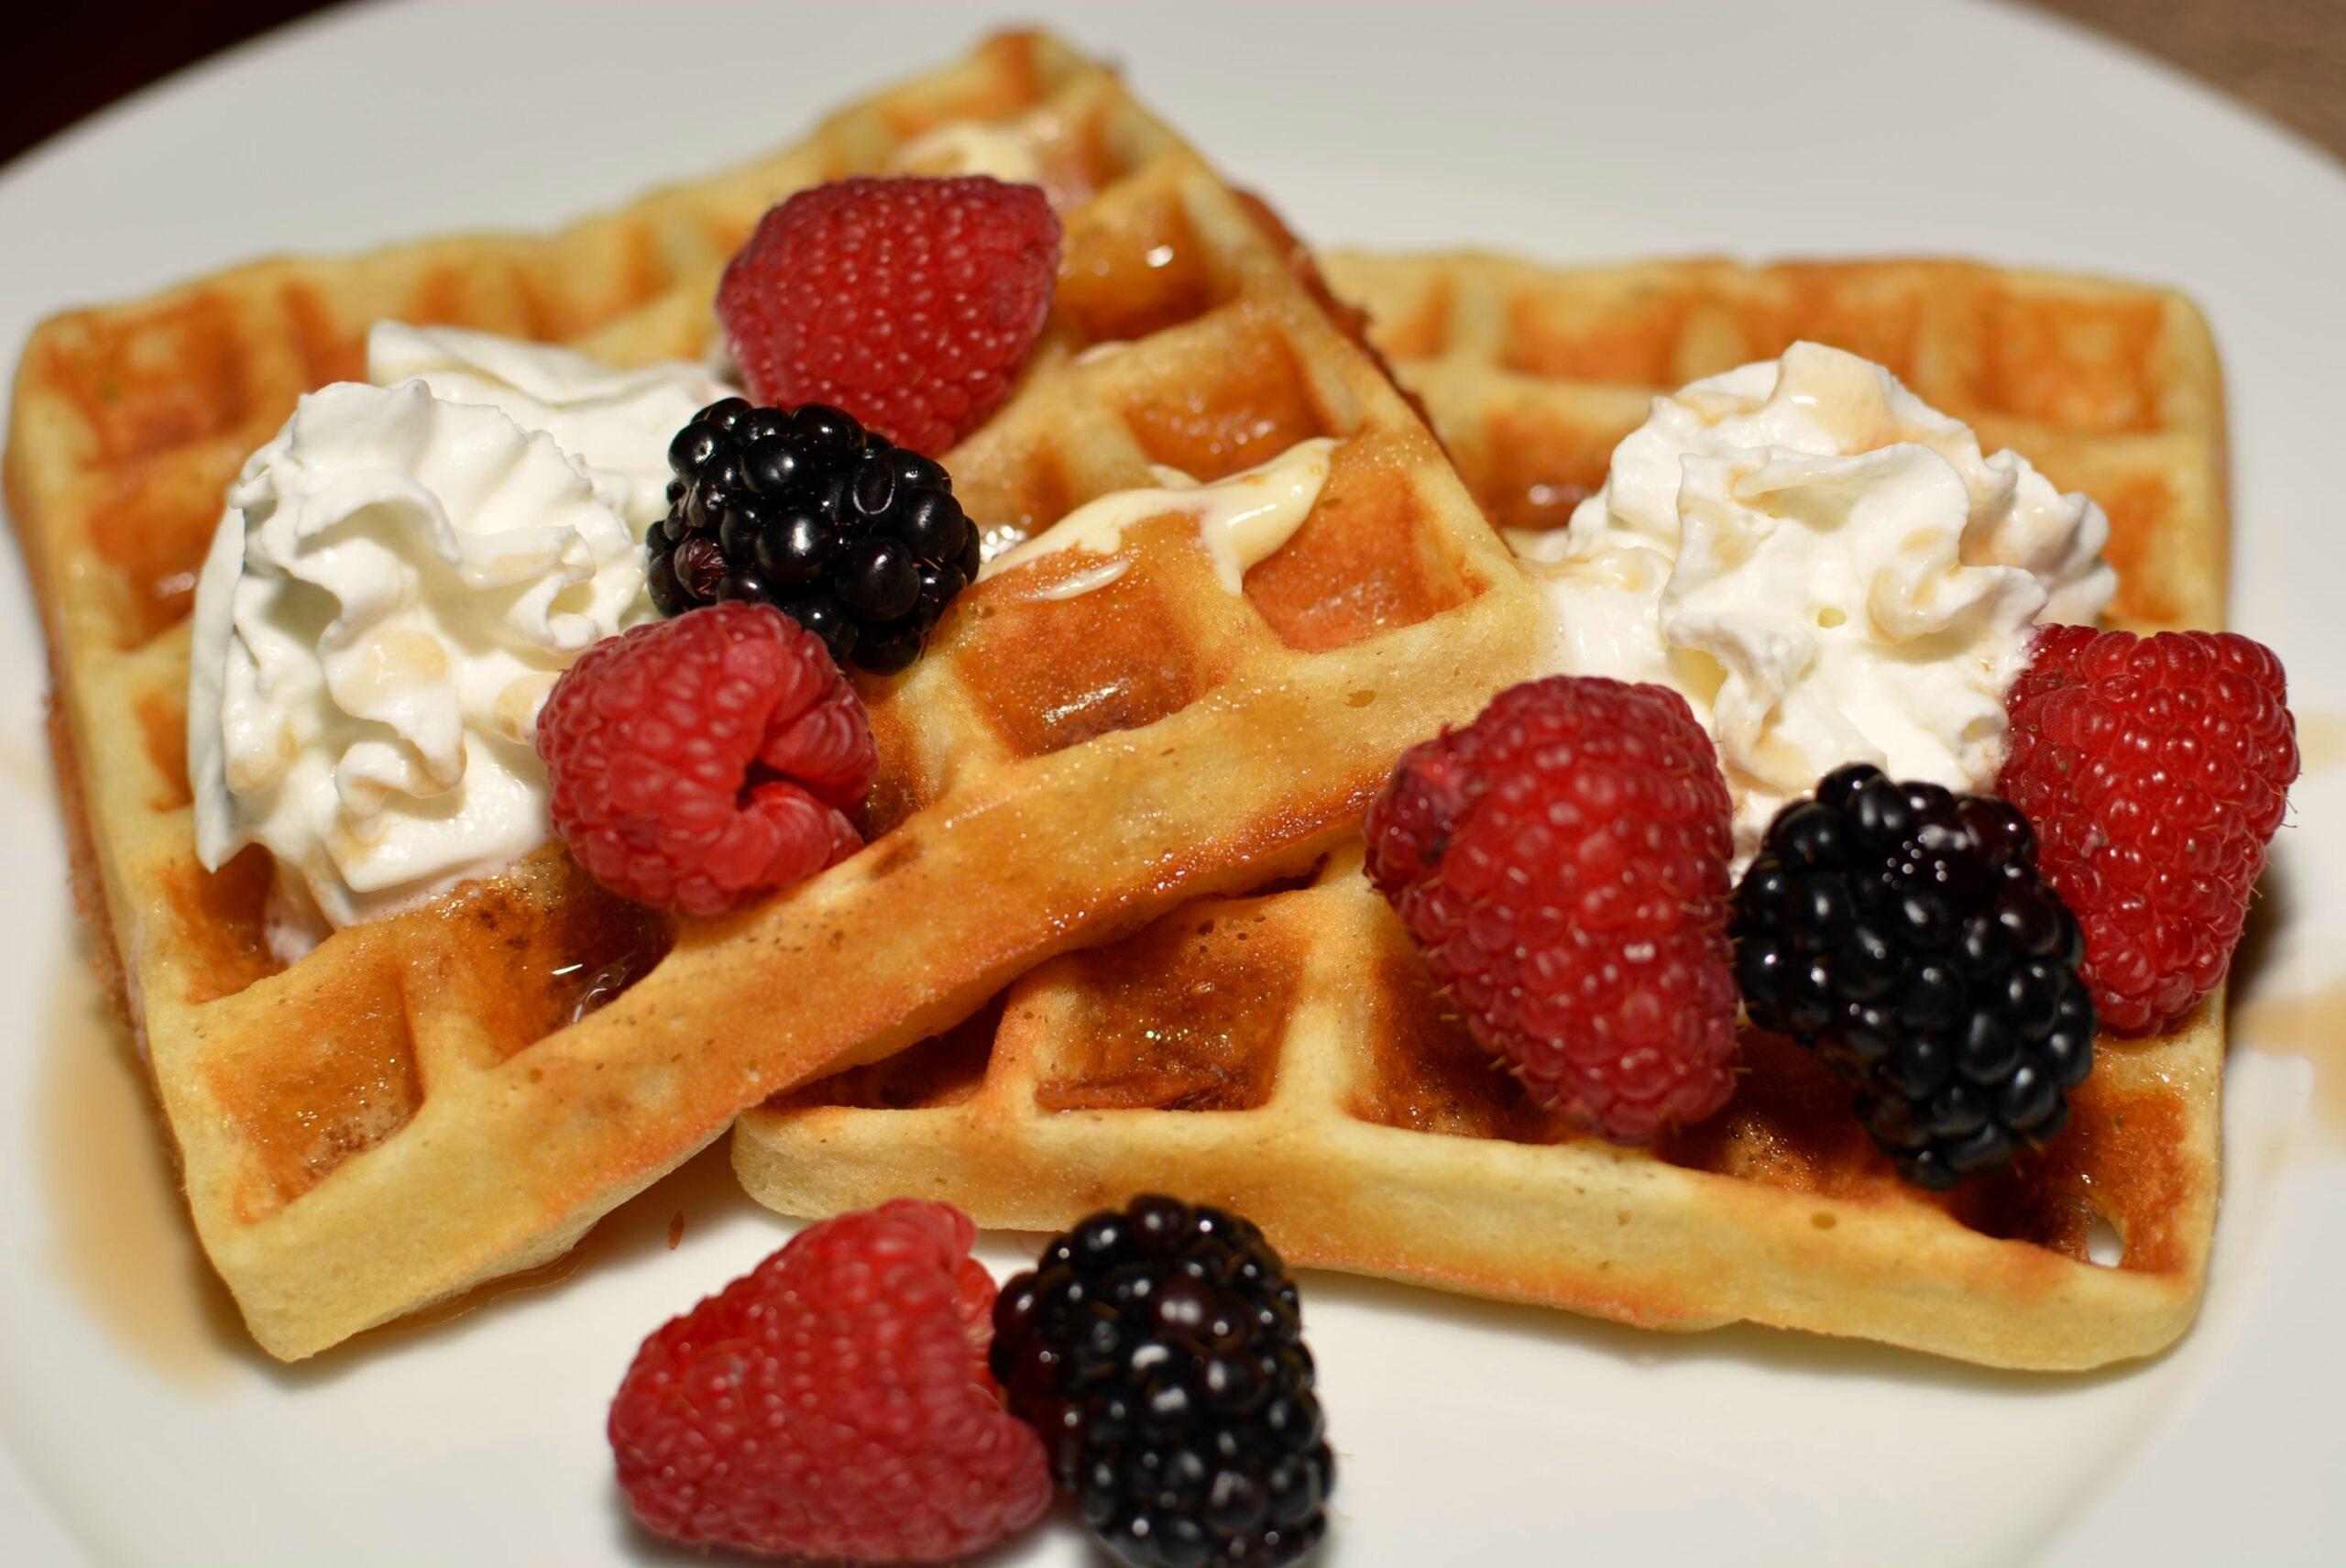 Homemade Belgian Waffles - The Cookin